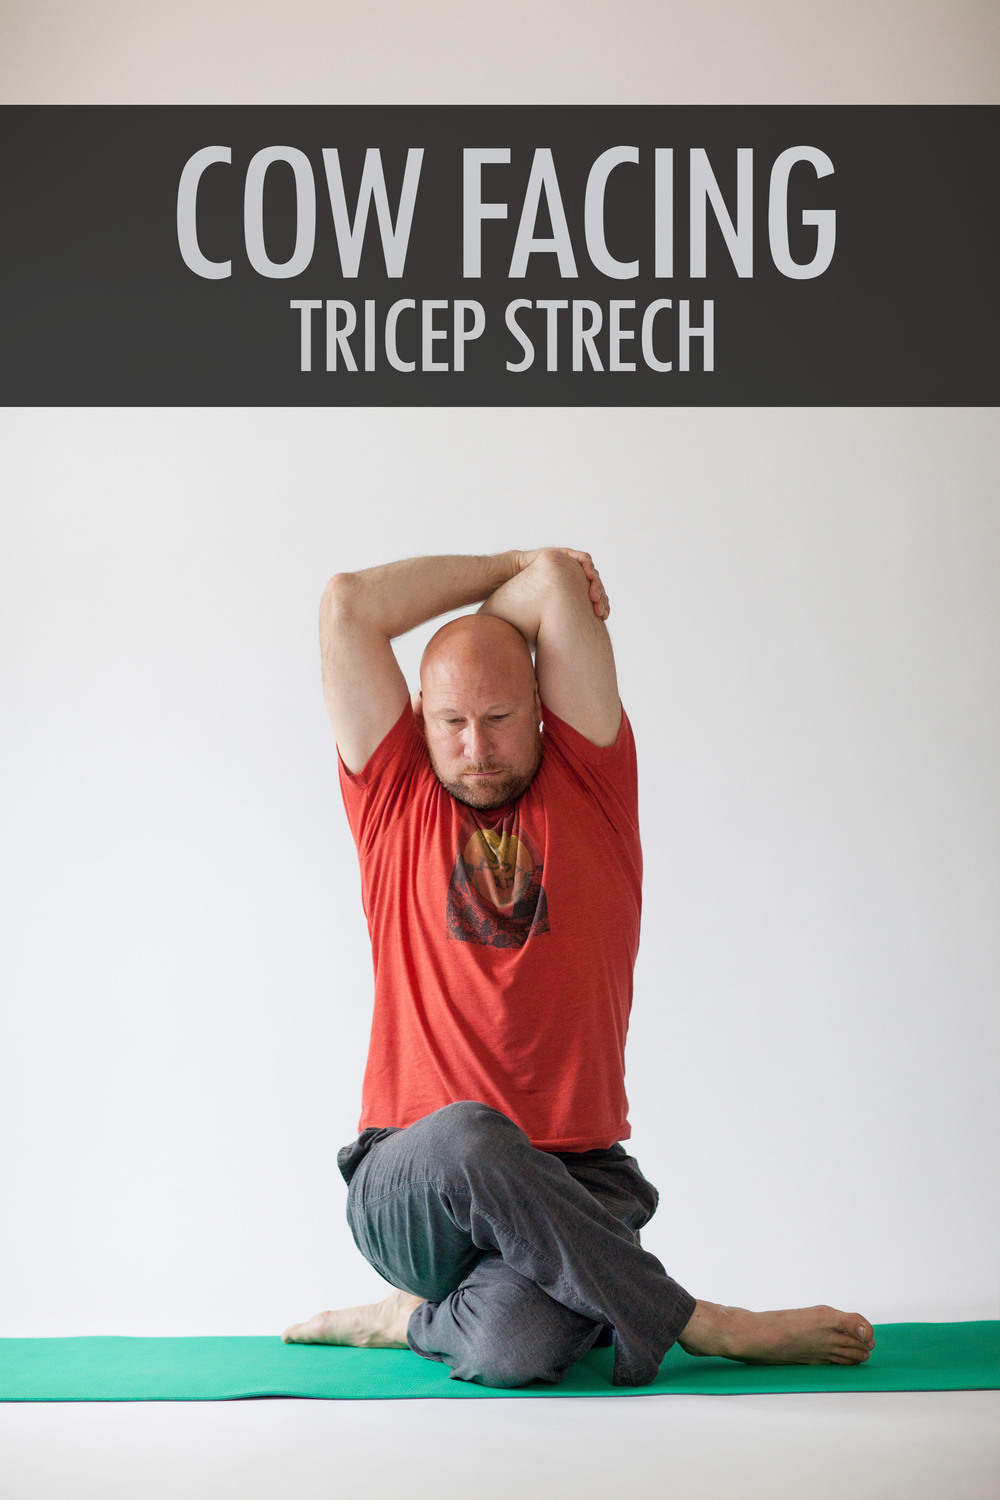 Cow Facing Tricep Stretch.jpg